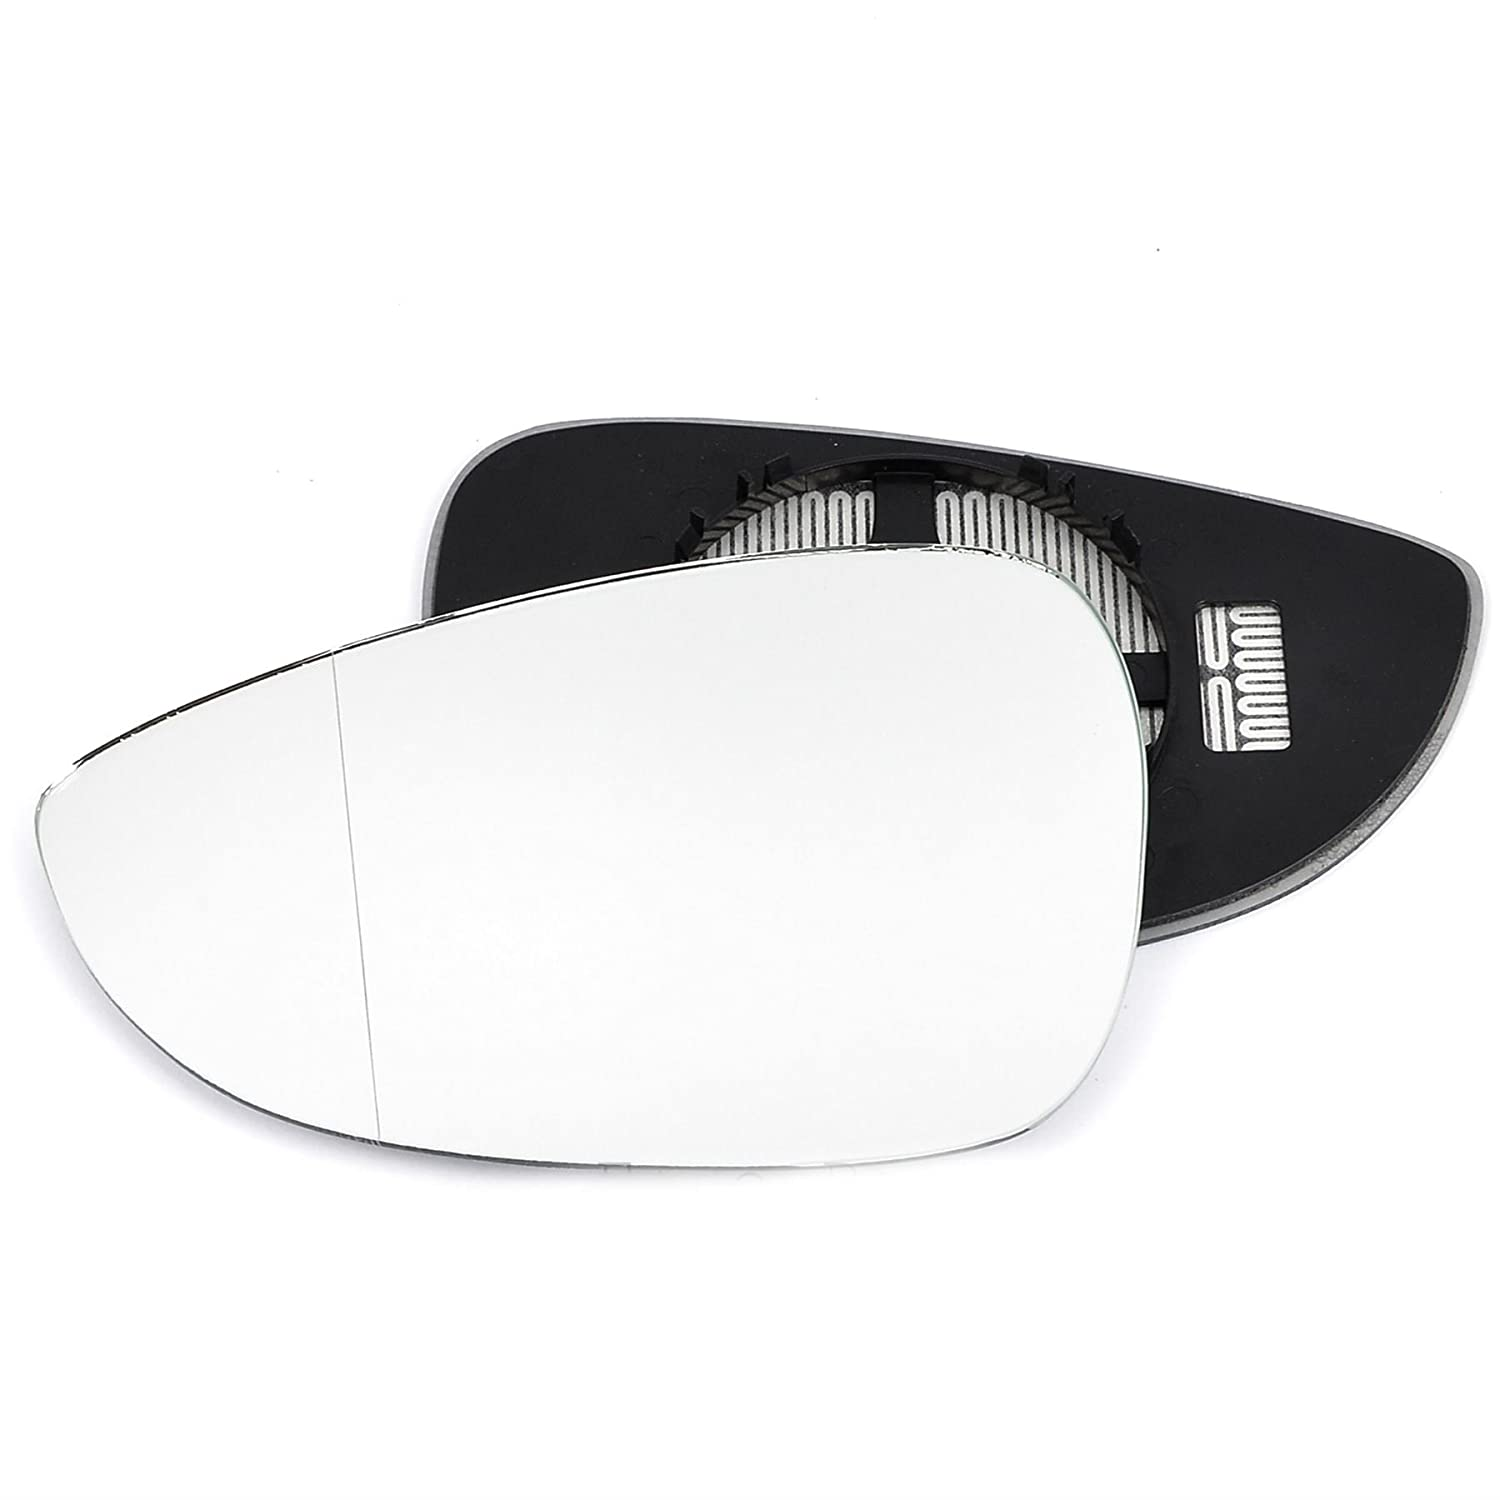 Passenger left hand side Heated wing door Silver mirror glass with backing plate #W-SHY/L-FDBX12 [Clip On] Sylgab